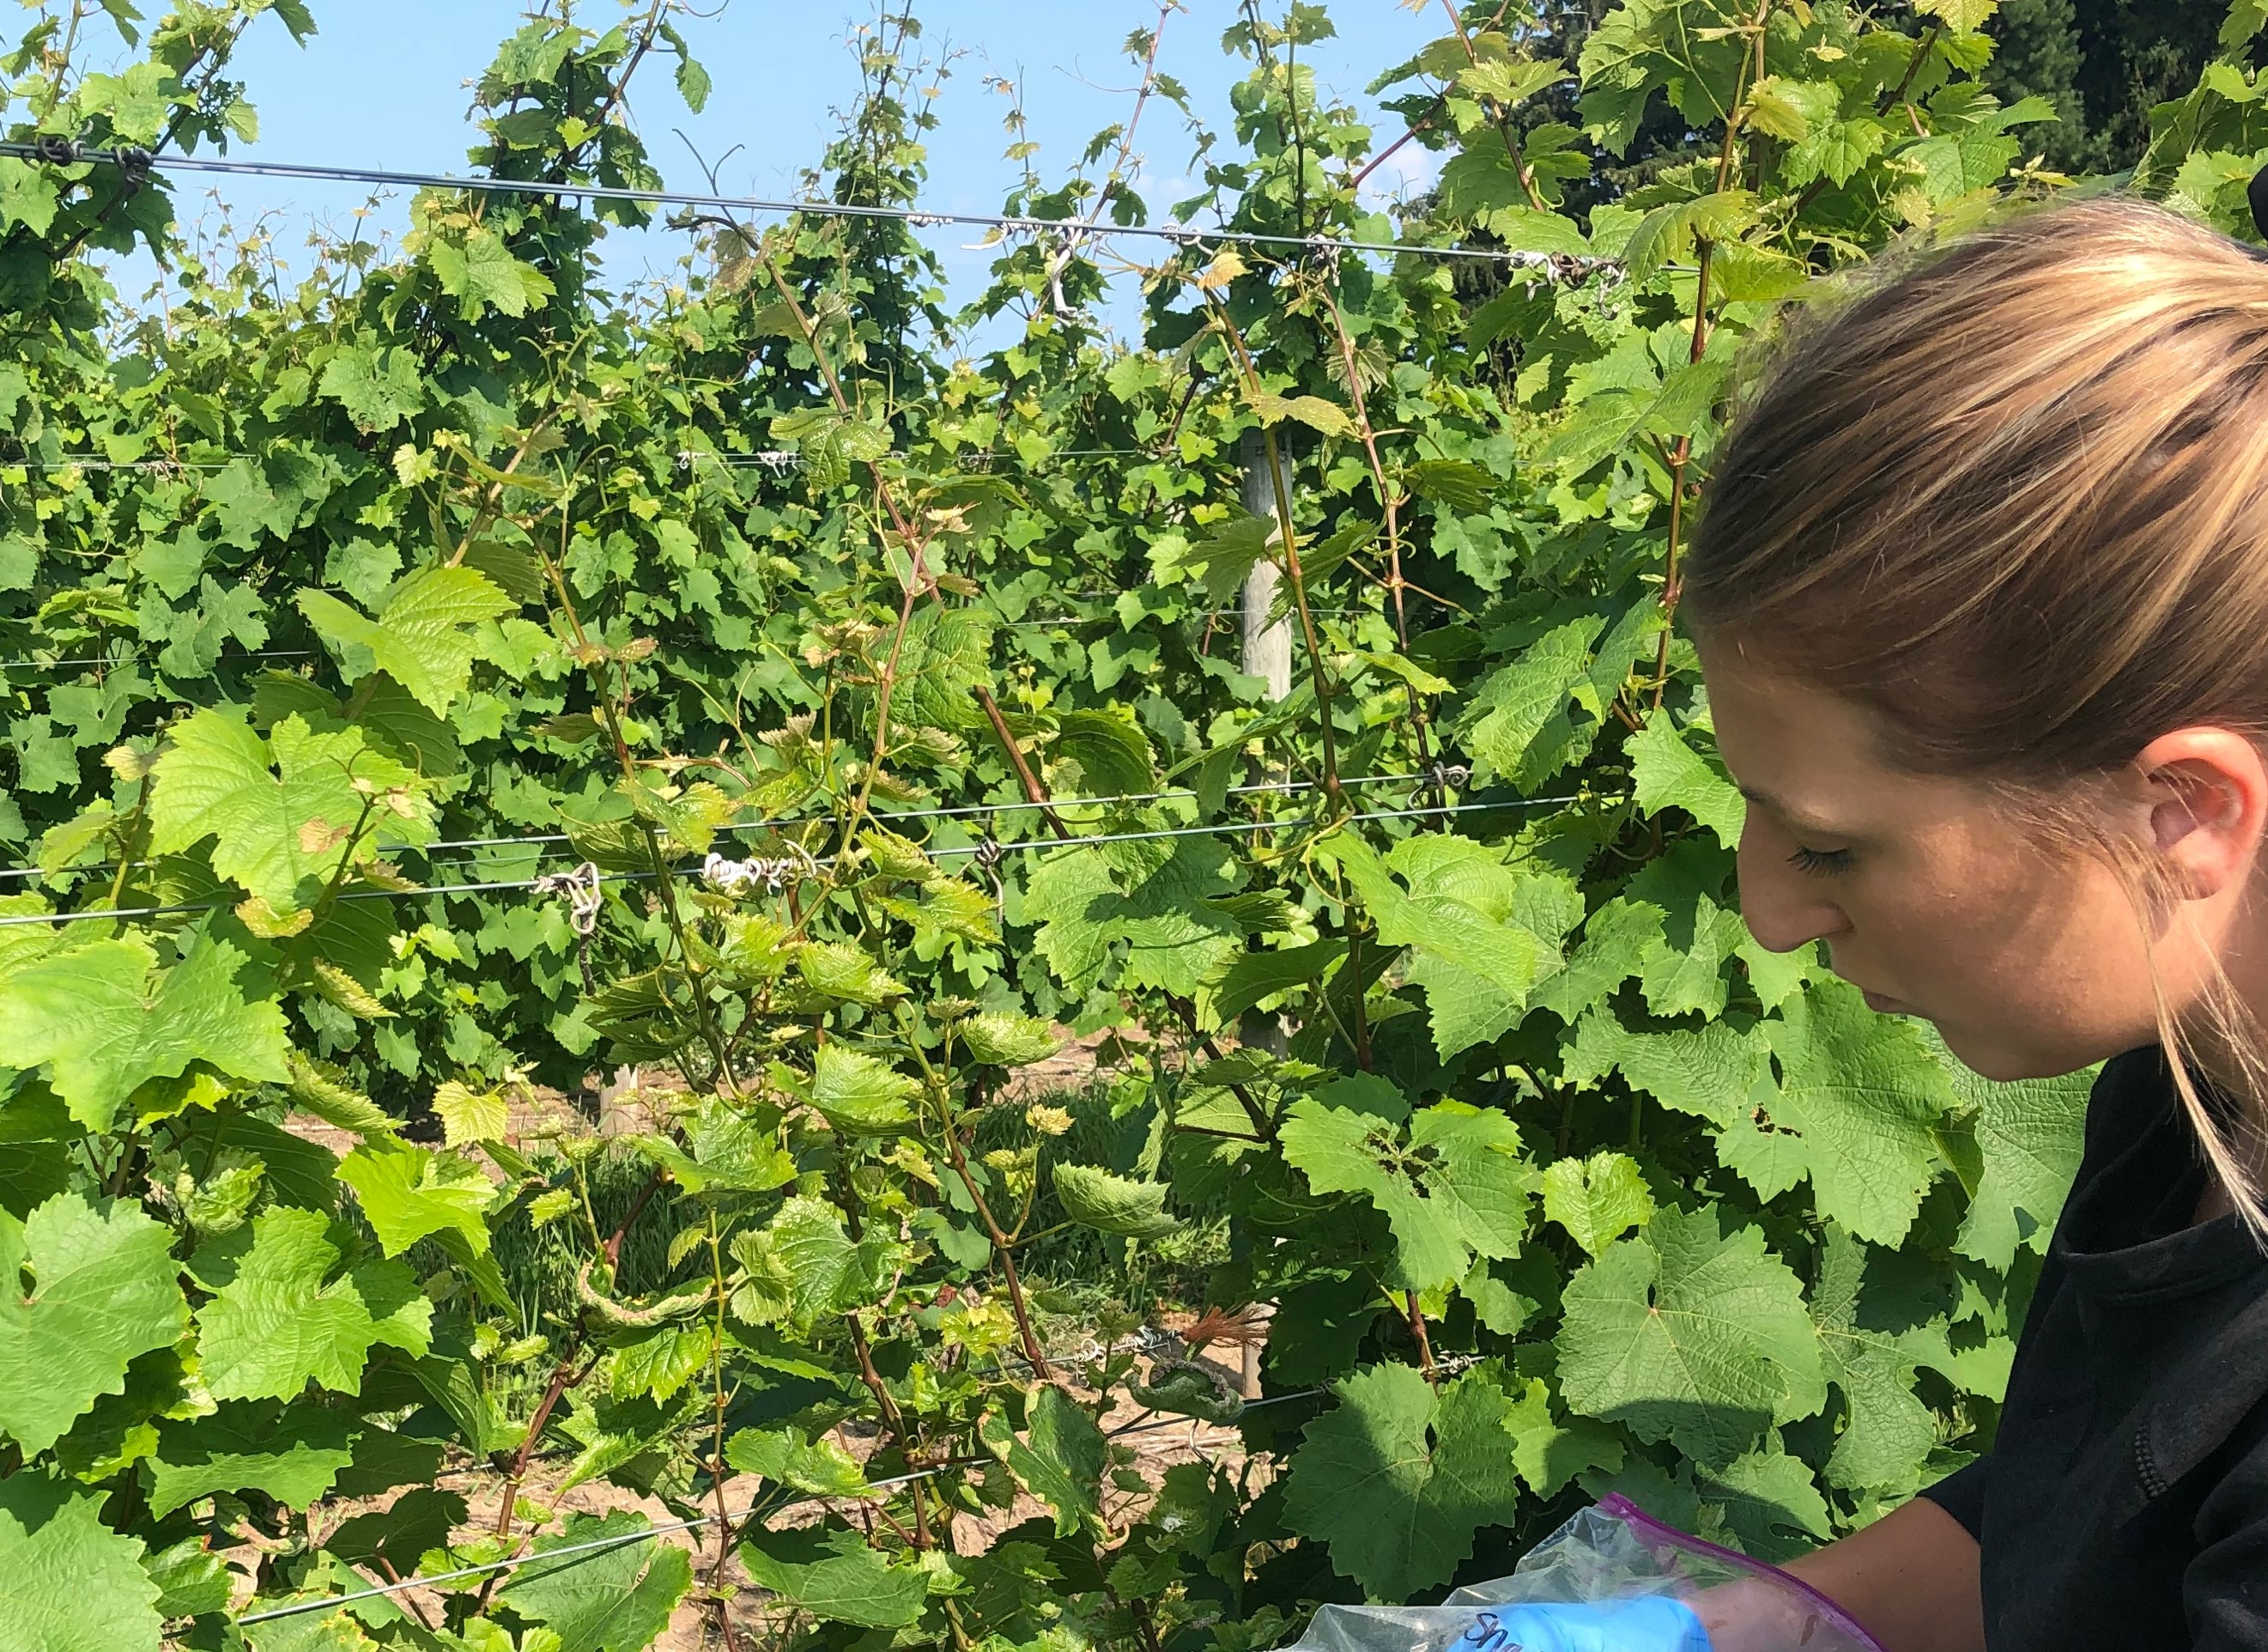 Sampling grape vines